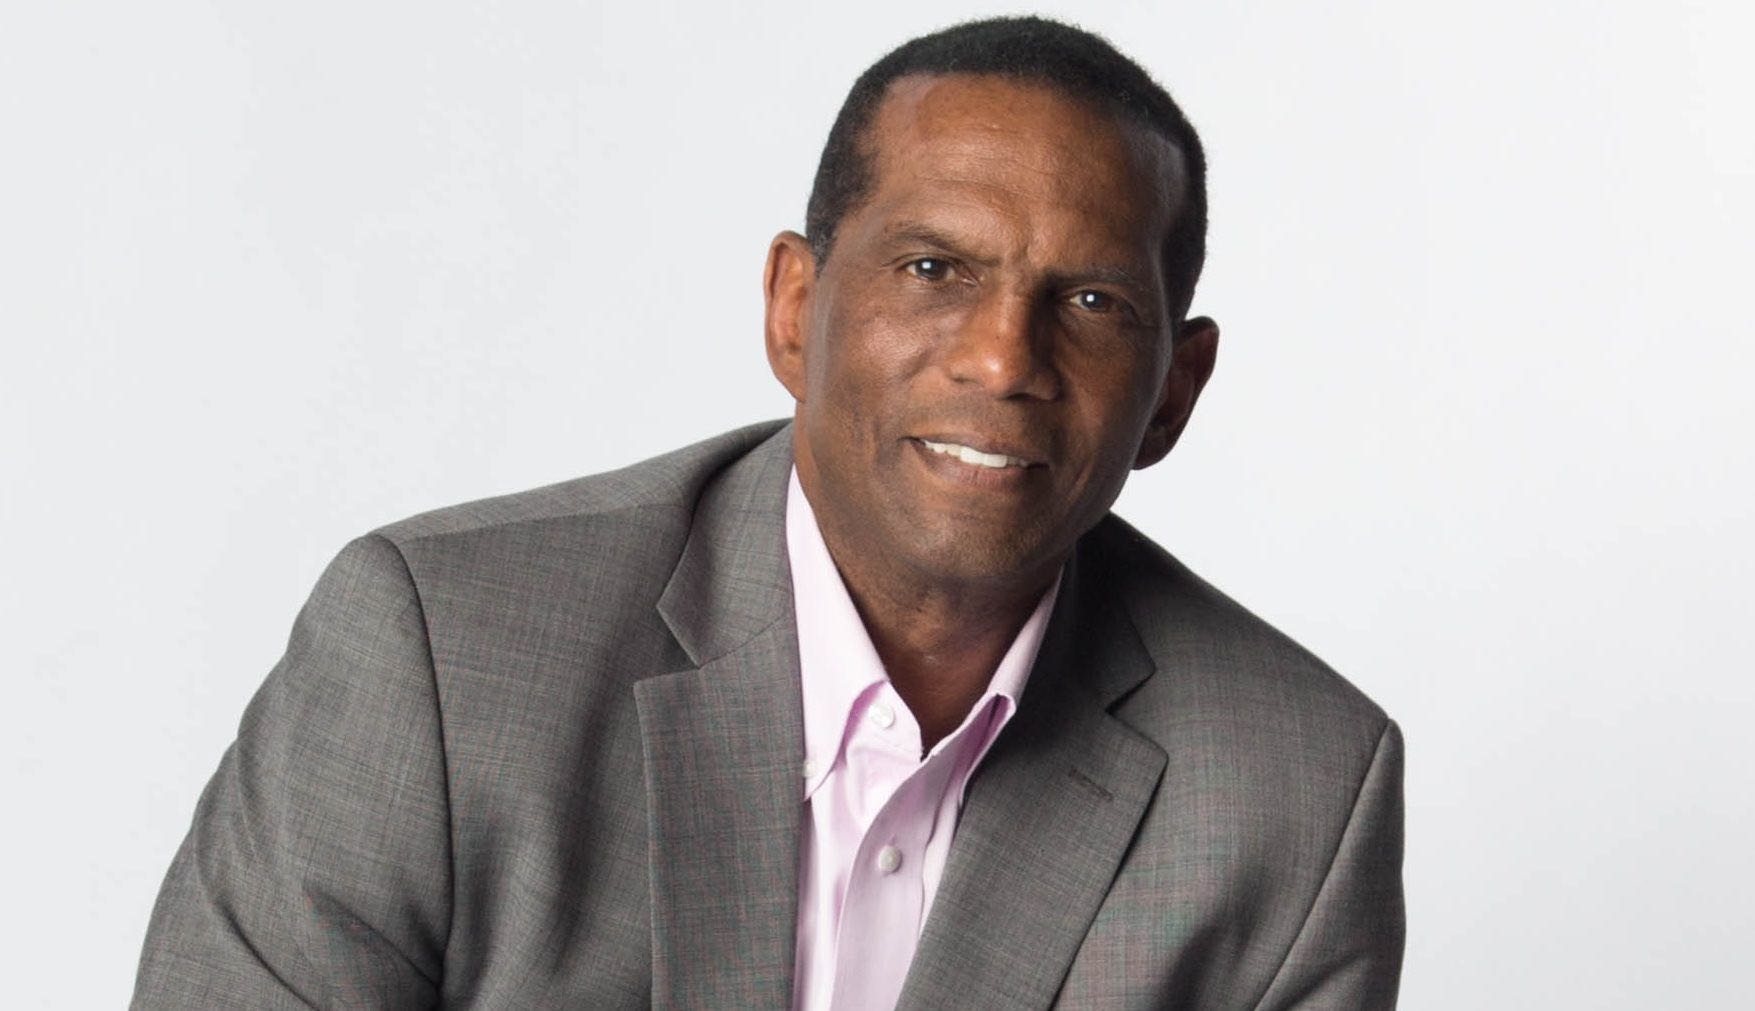 Get to know Burgess Owens, candidate for Utah's 4th Congressional ...